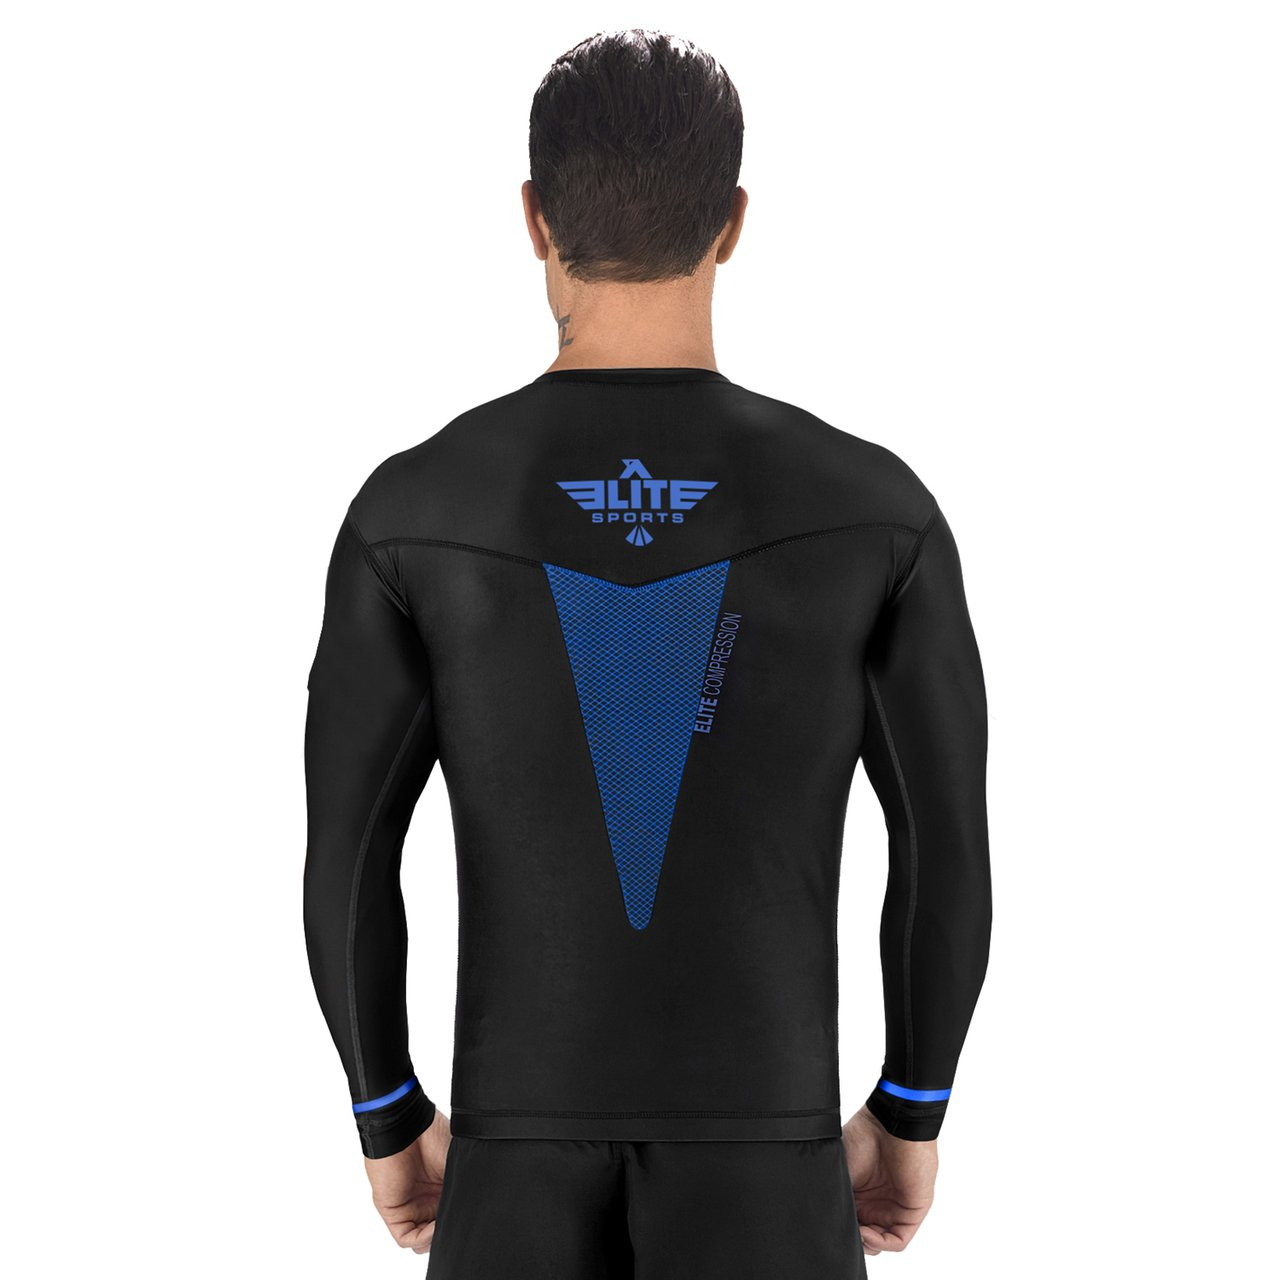 Load image into Gallery viewer, Elite Sports Star Series Sublimation Black/Blue Long Sleeve Muay Thai Rash Guard